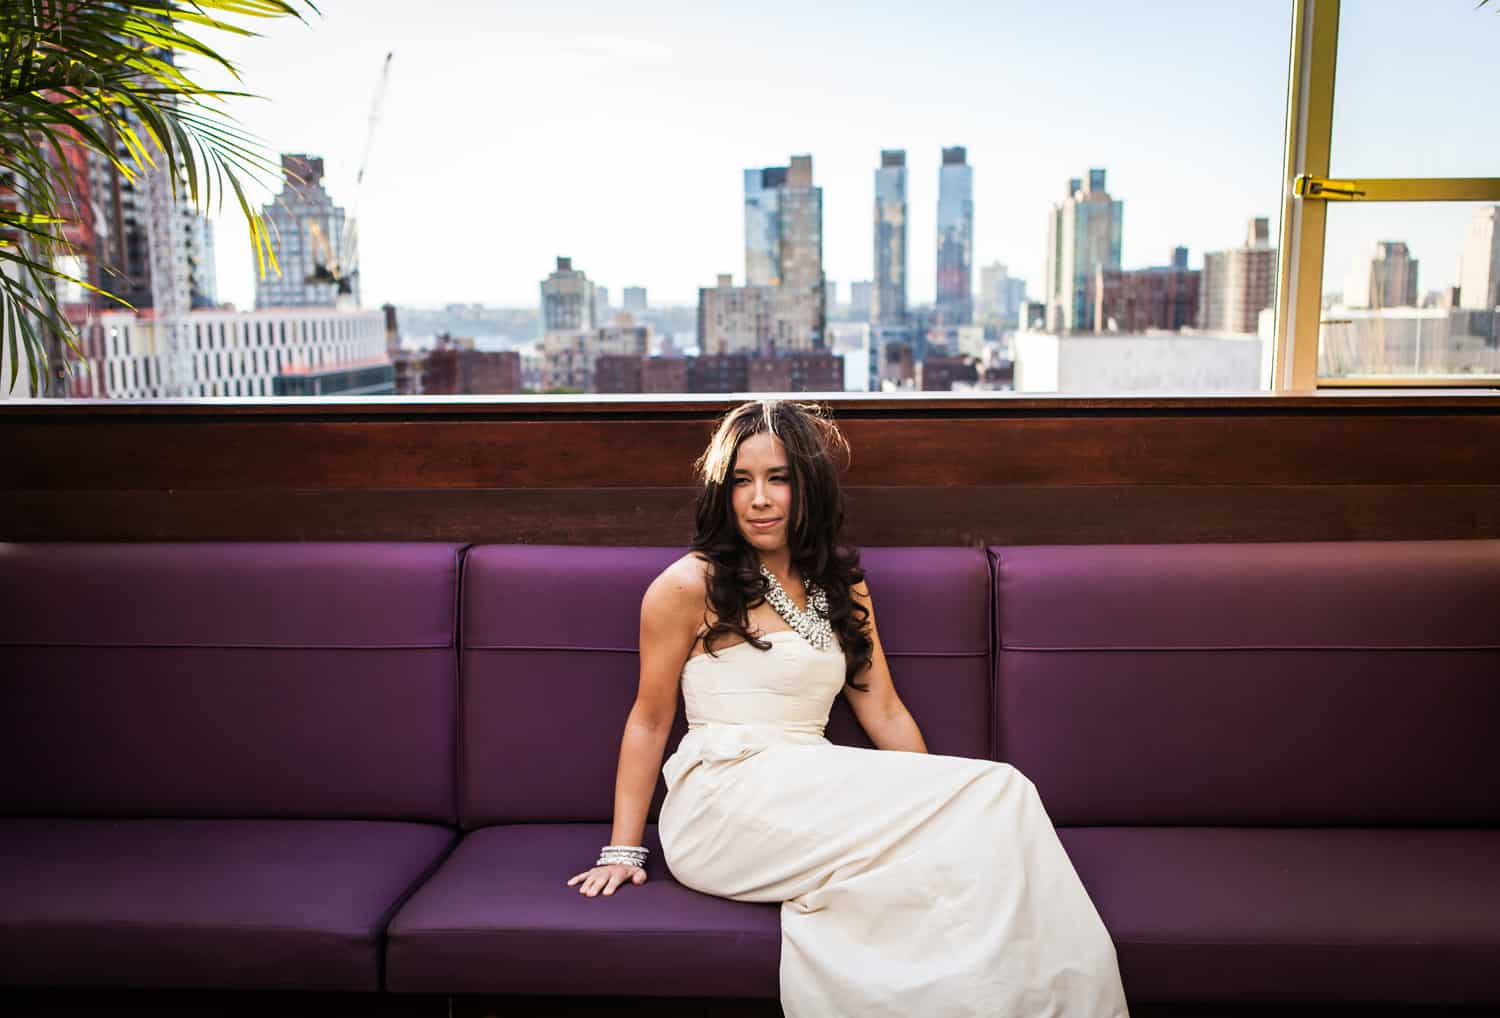 Bride sitting on bench with view of Upper West Side in background